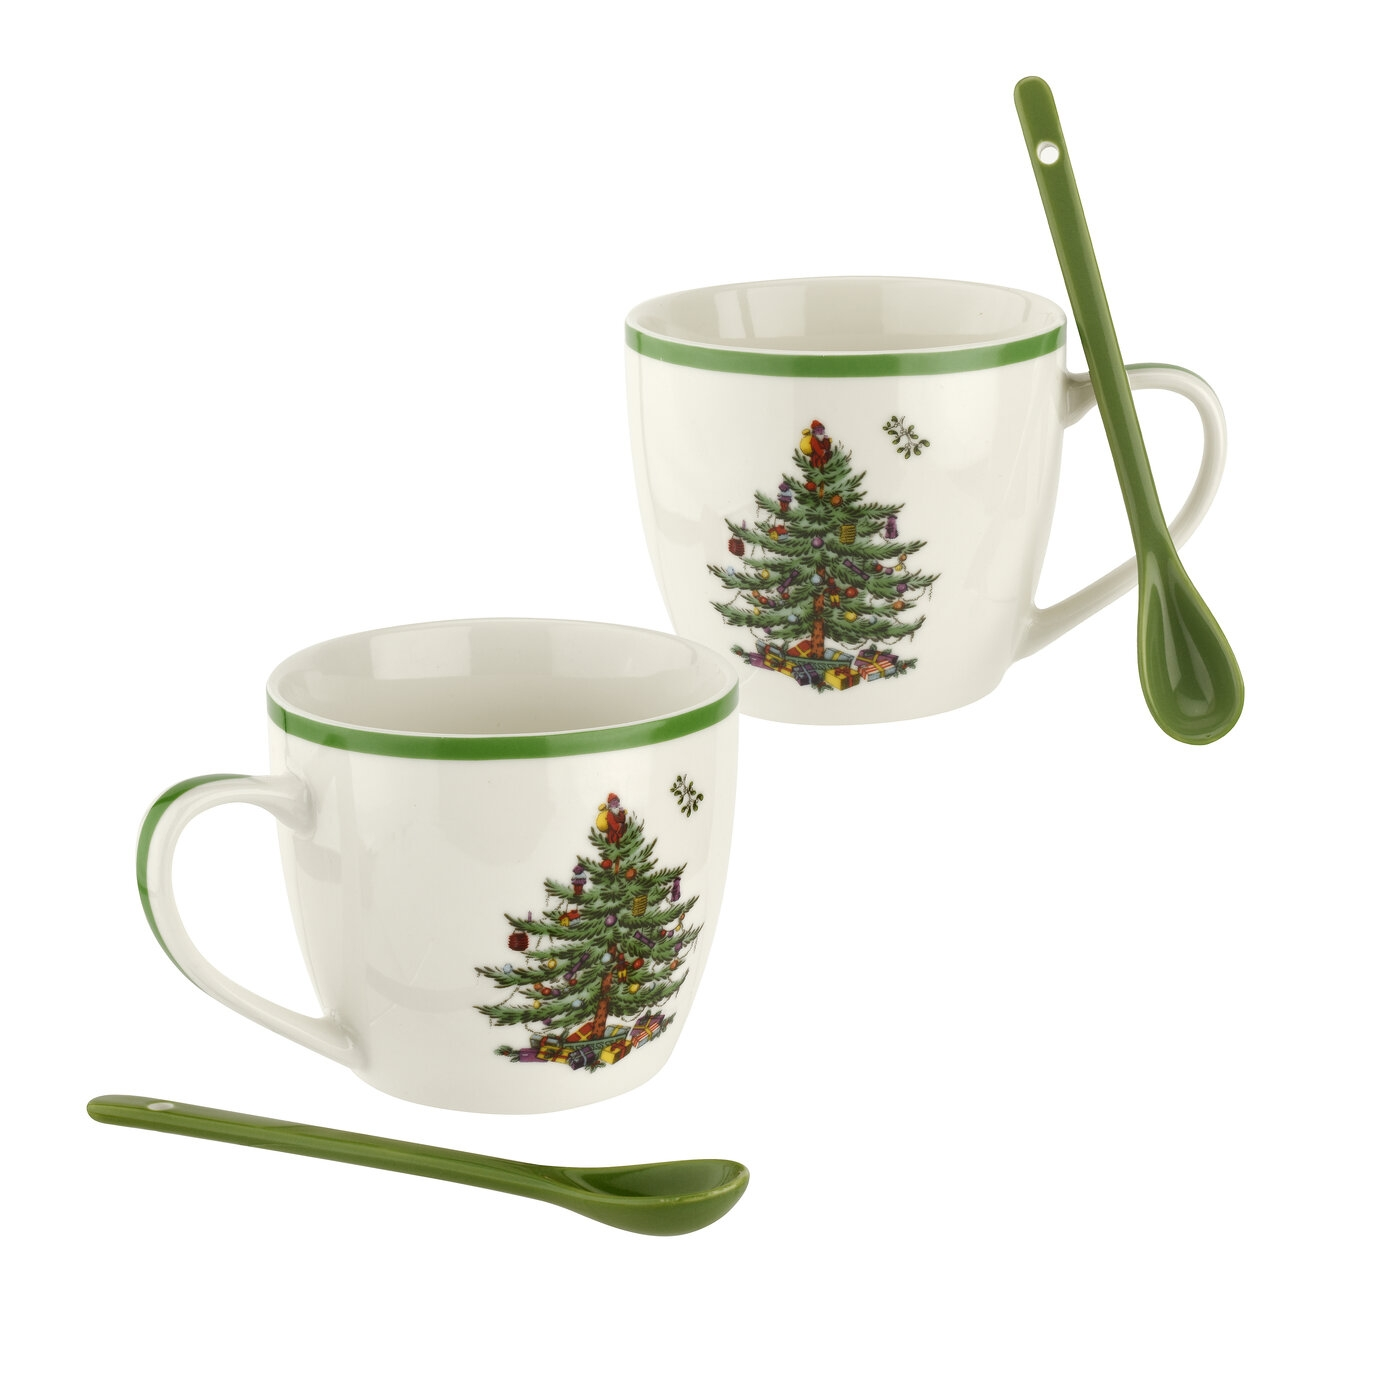 Spode Christmas Tree 4 Piece Mug and Spoon Set image number null